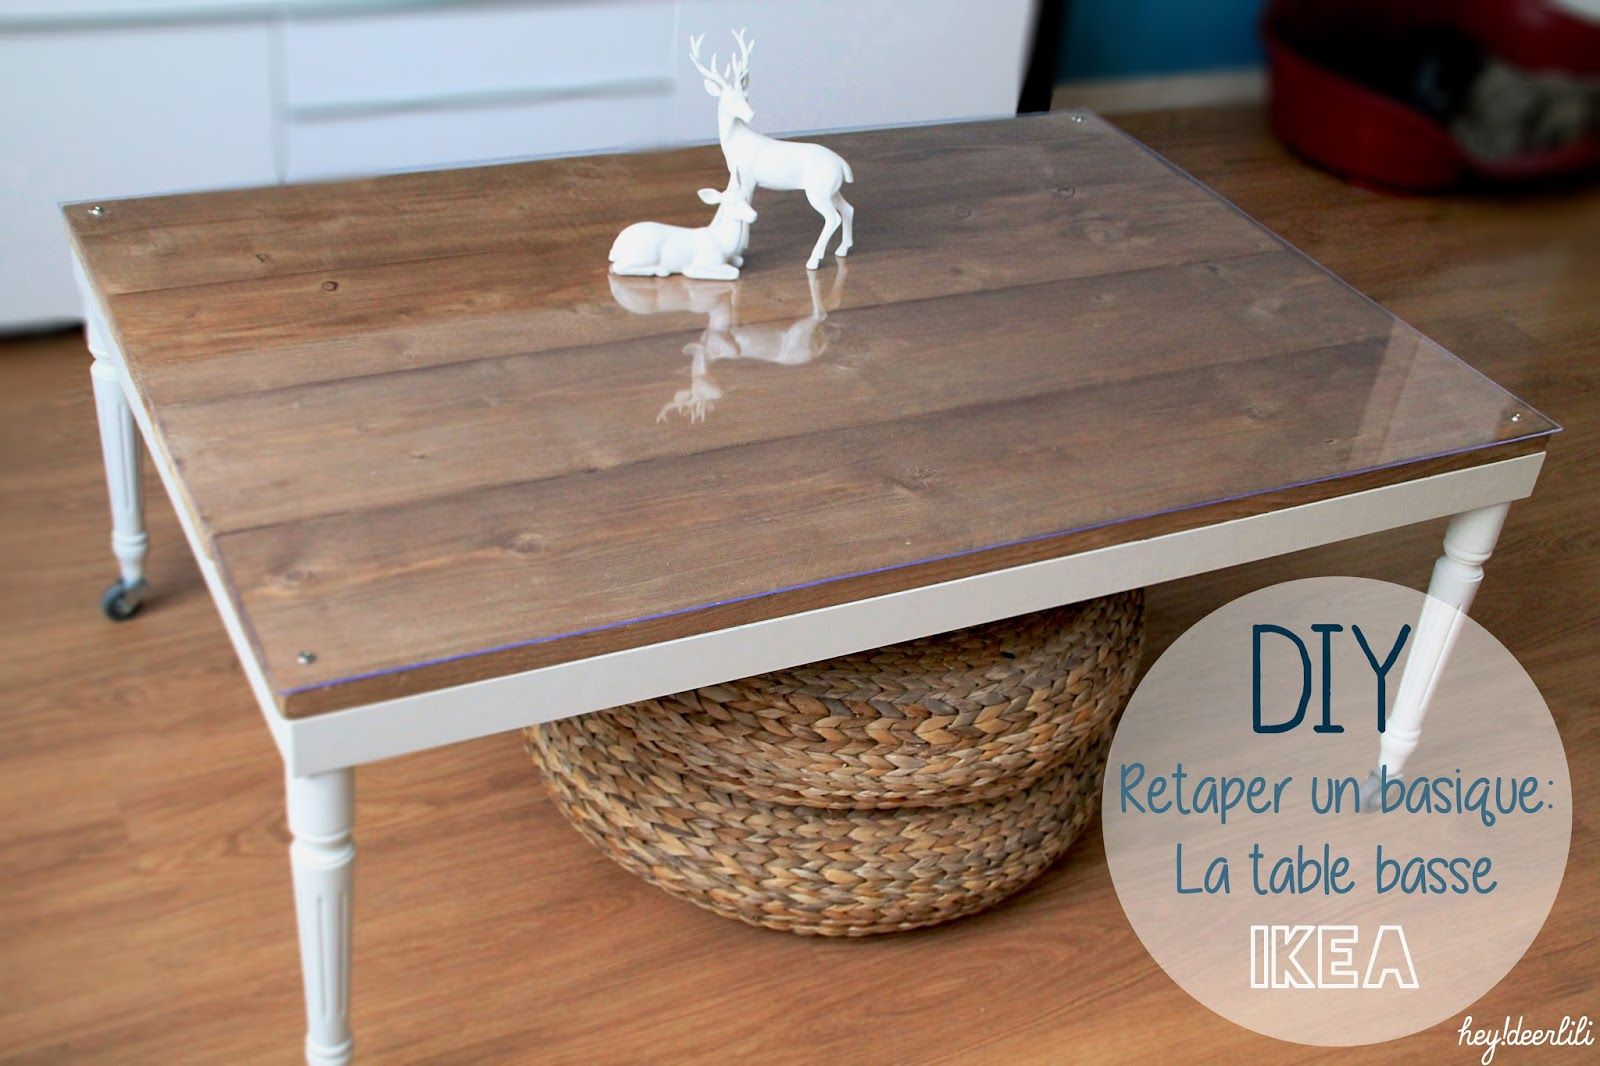 Hey deer lili retaper un basique la table basse ikea diy customiser se - Customiser table basse ...